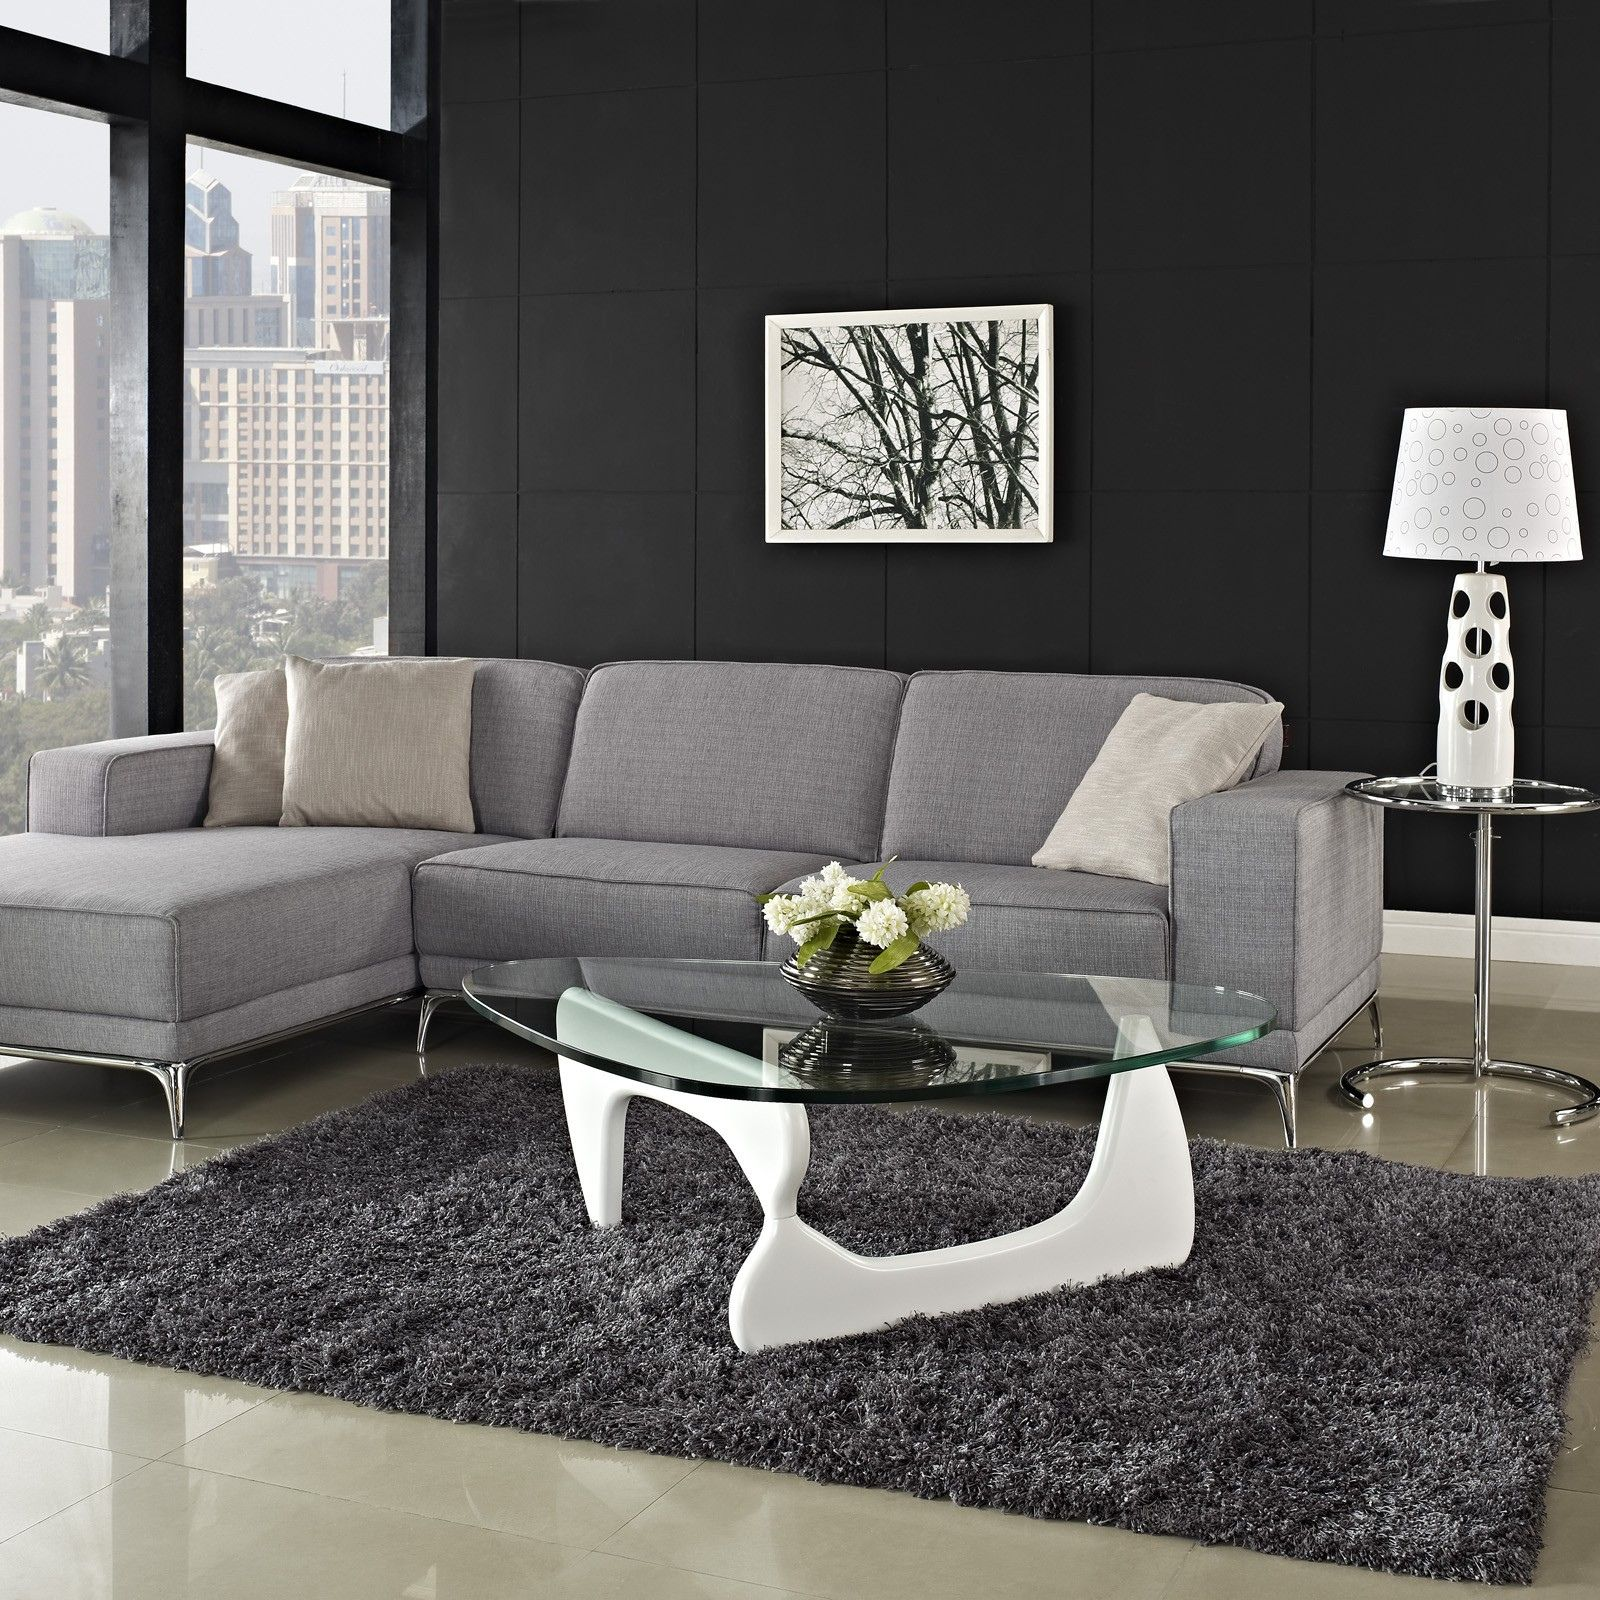 Noguchi Coffee Table White Contemporary Living Room Sets Check